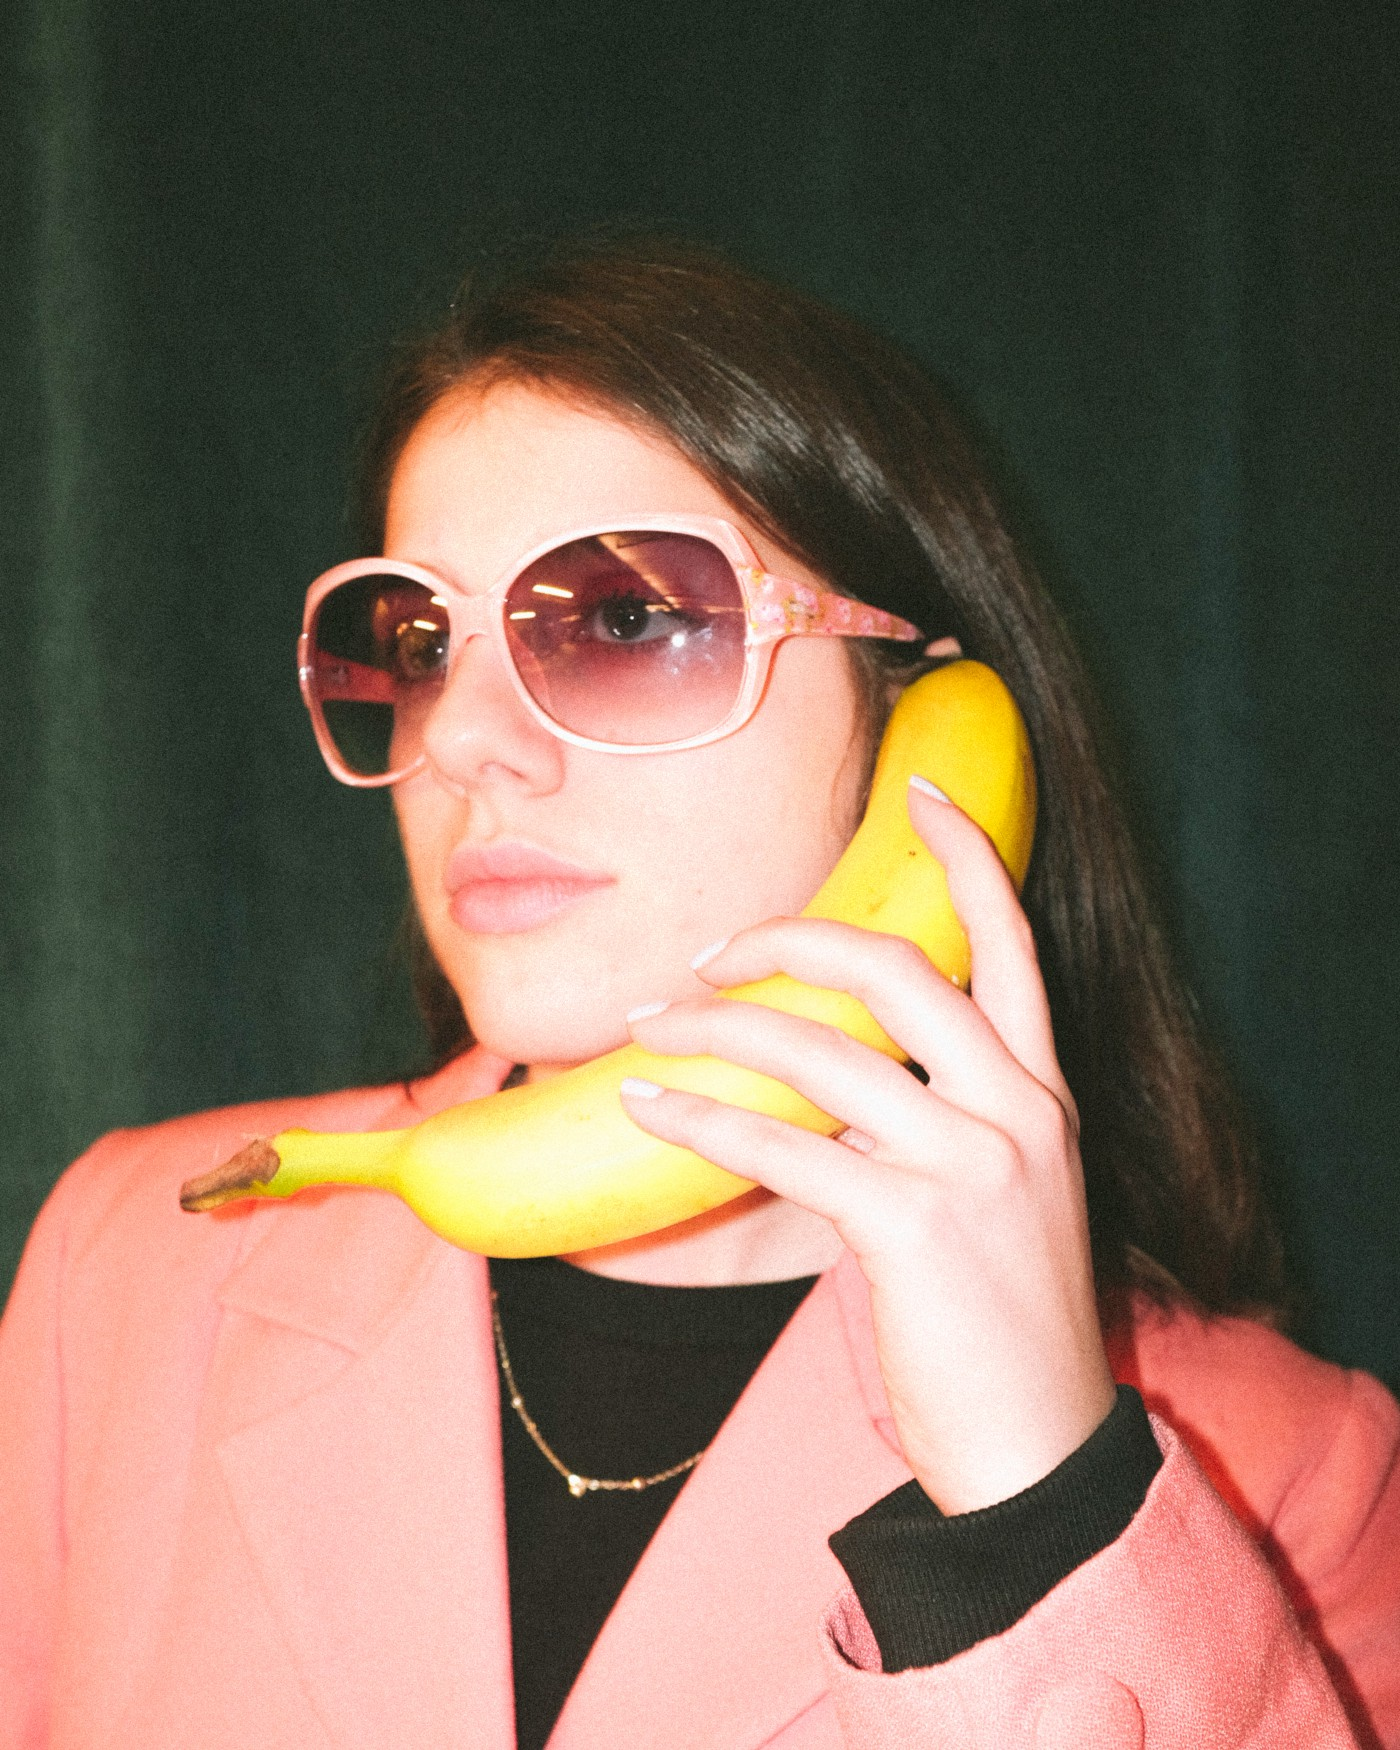 Person holding banana as a telephone.